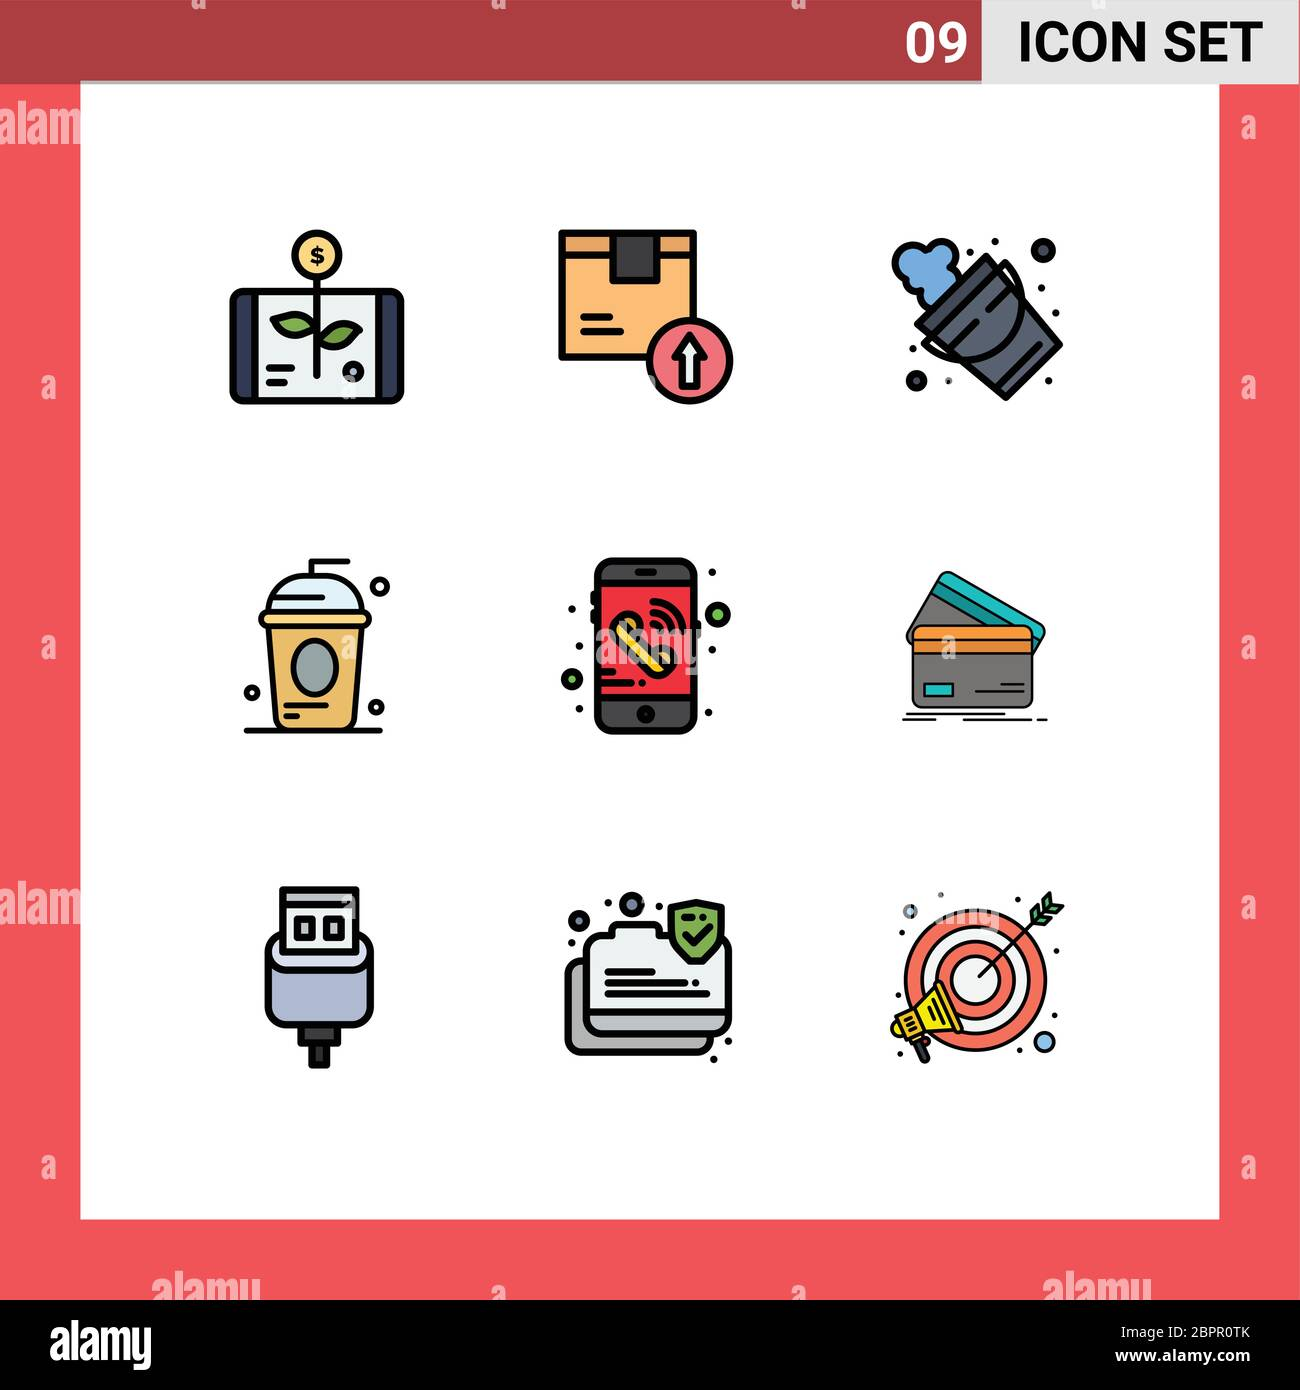 9 Creative Icons Modern Signs and Symbols of holiday, cole, logistic, cake, firefighter Editable Vector Design Elements Stock Vector